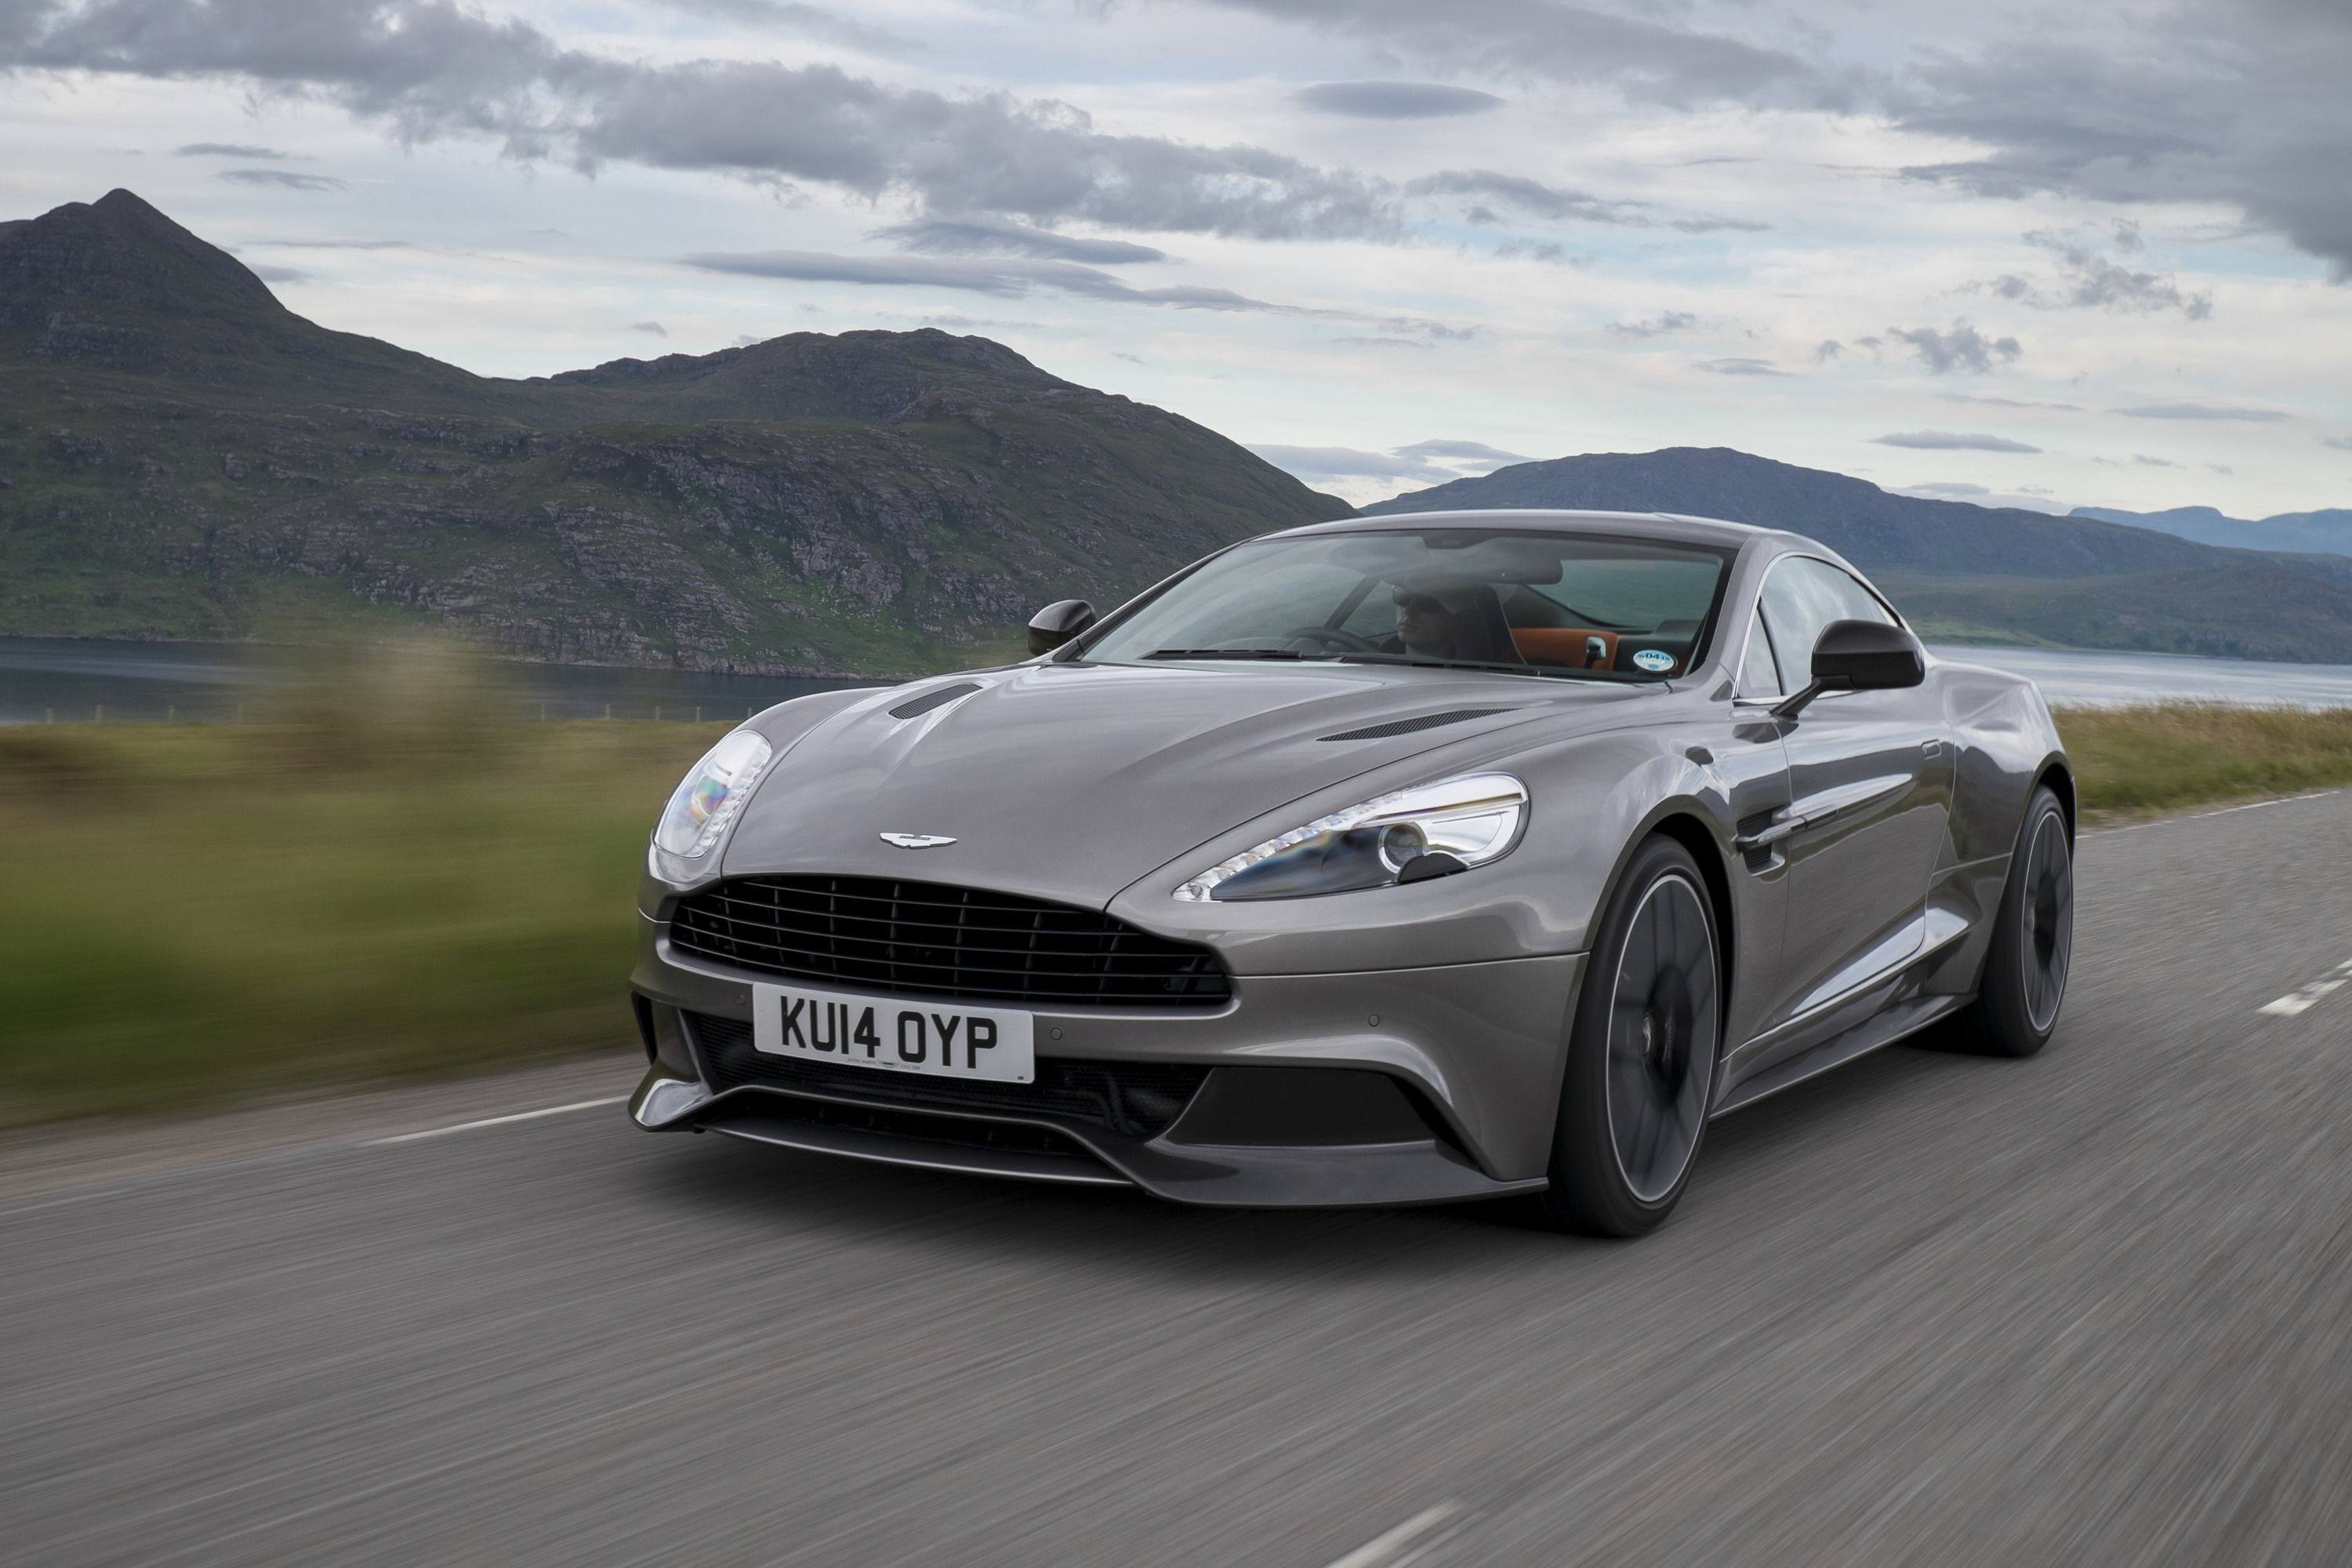 aston martin vanquish reviews, specs & prices - top speed